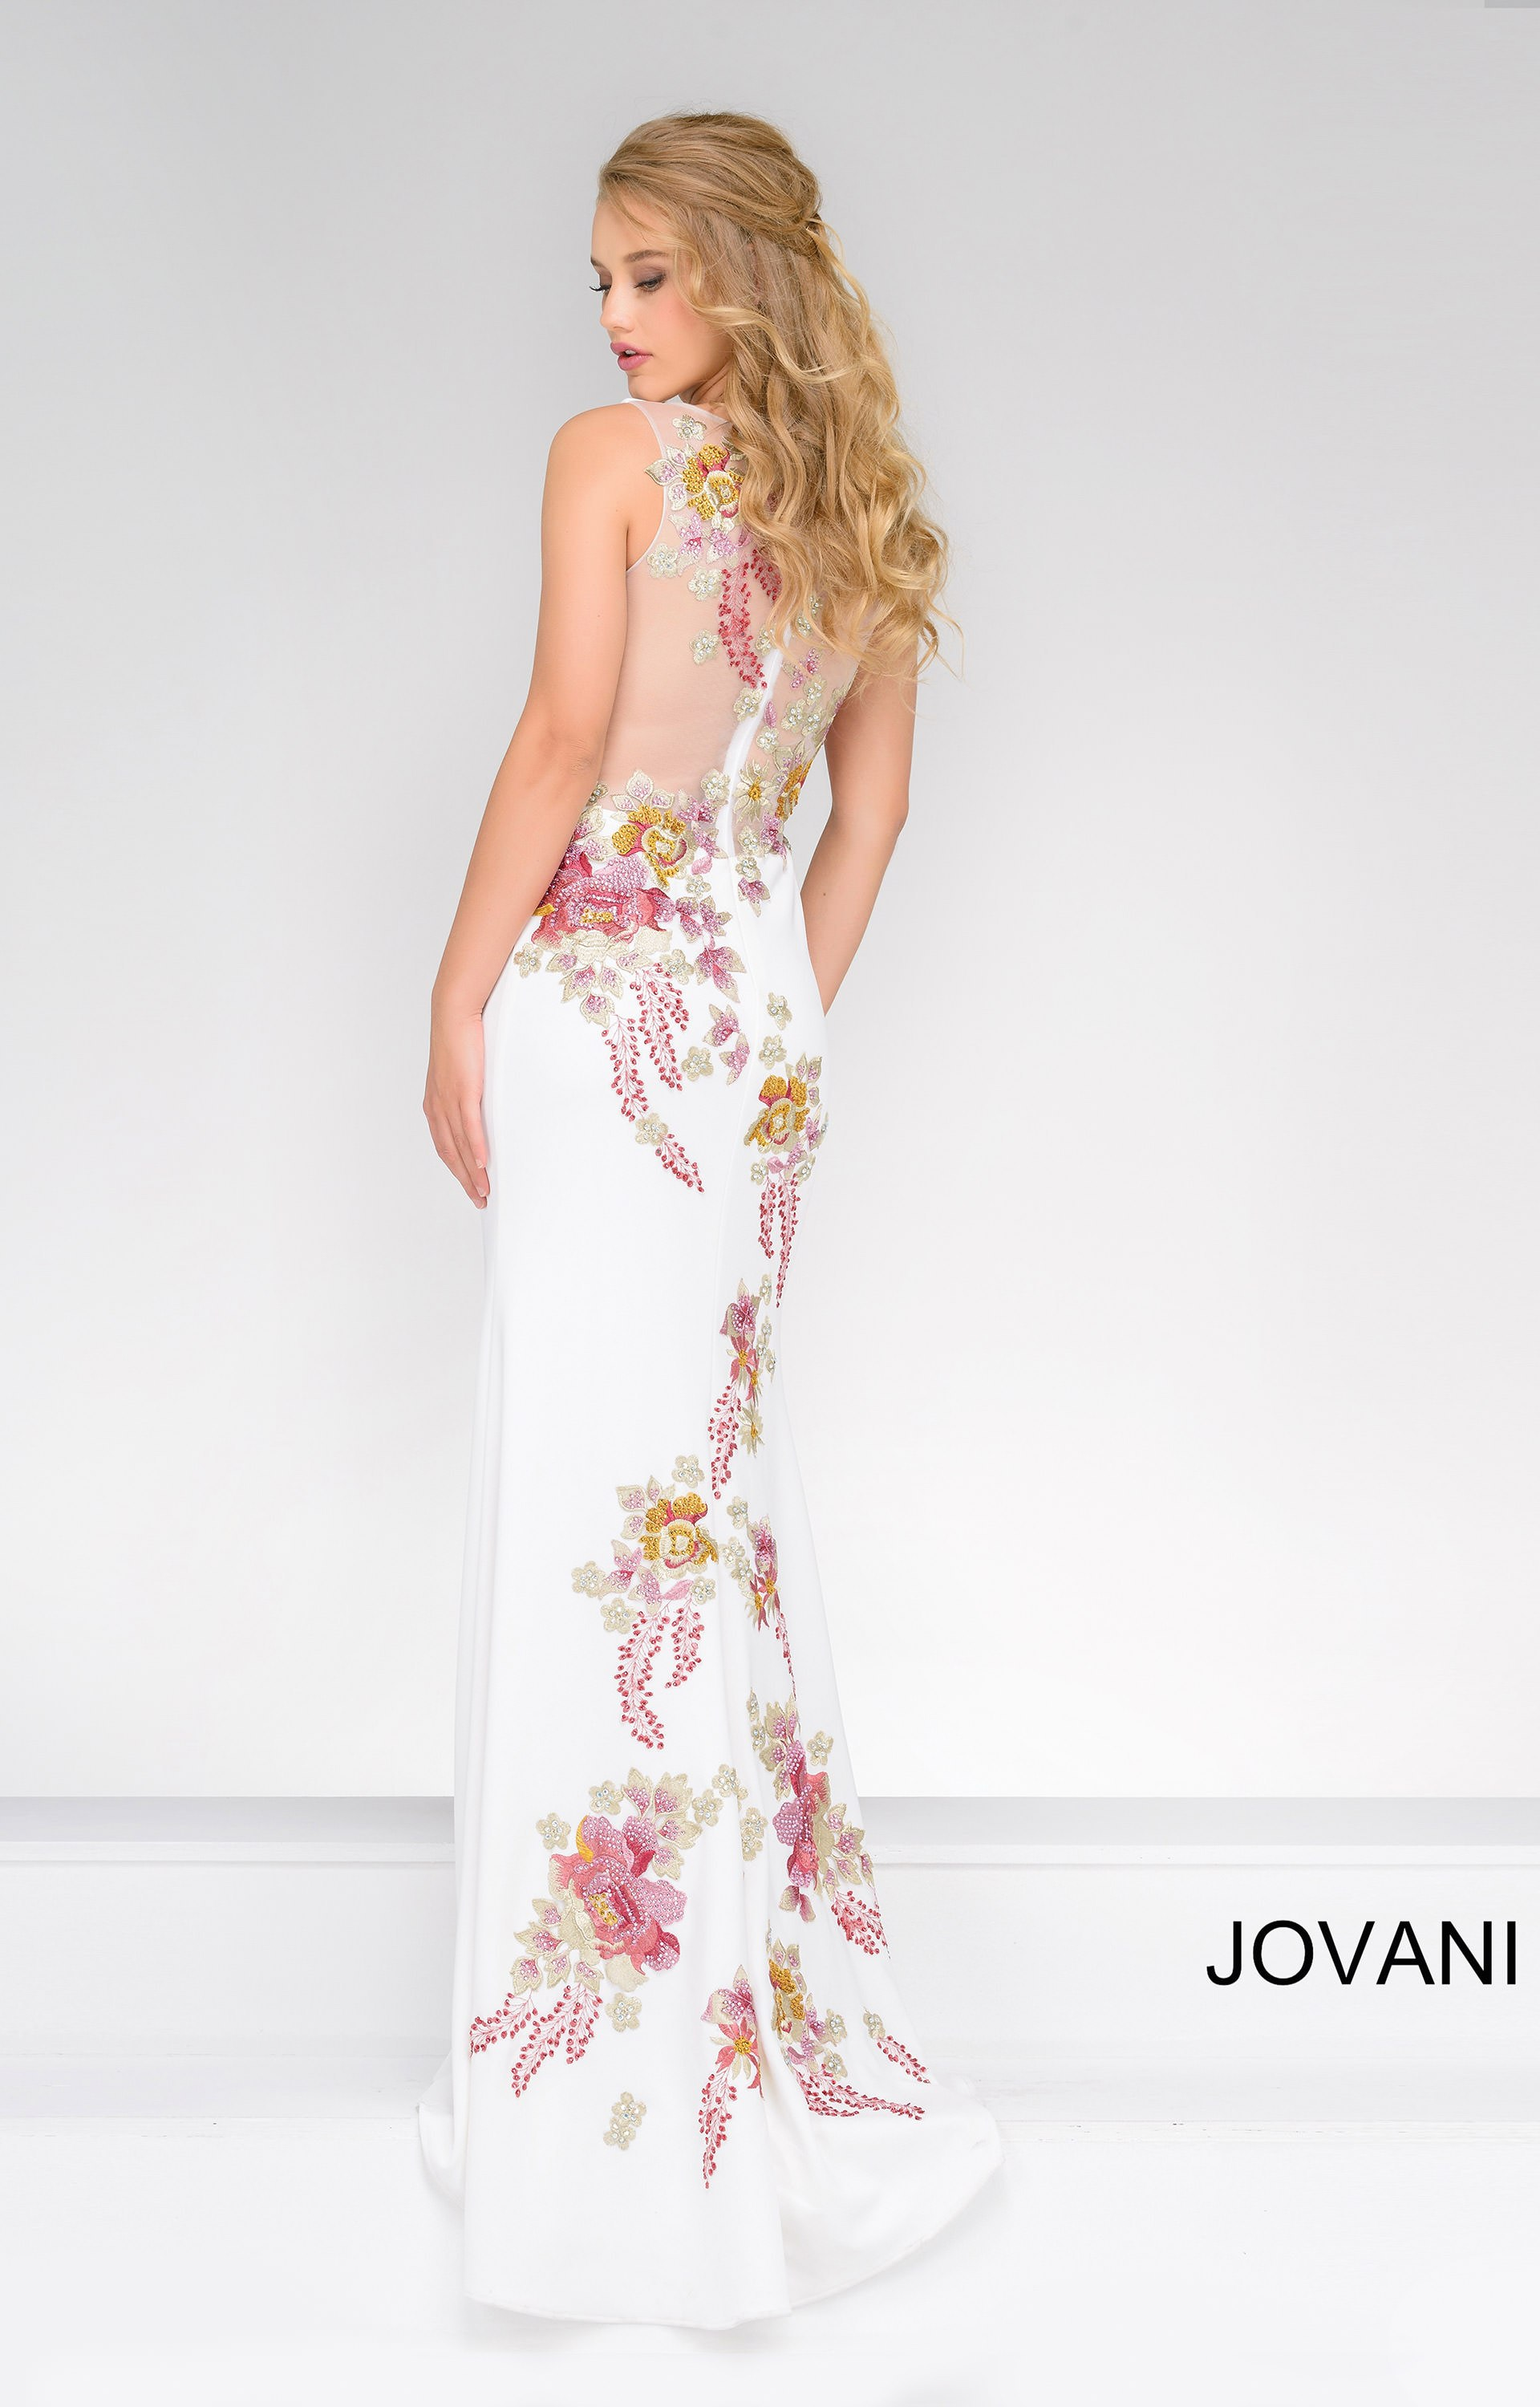 Jovani 33679 Floral Embroidered Jersey Dress Prom Dress